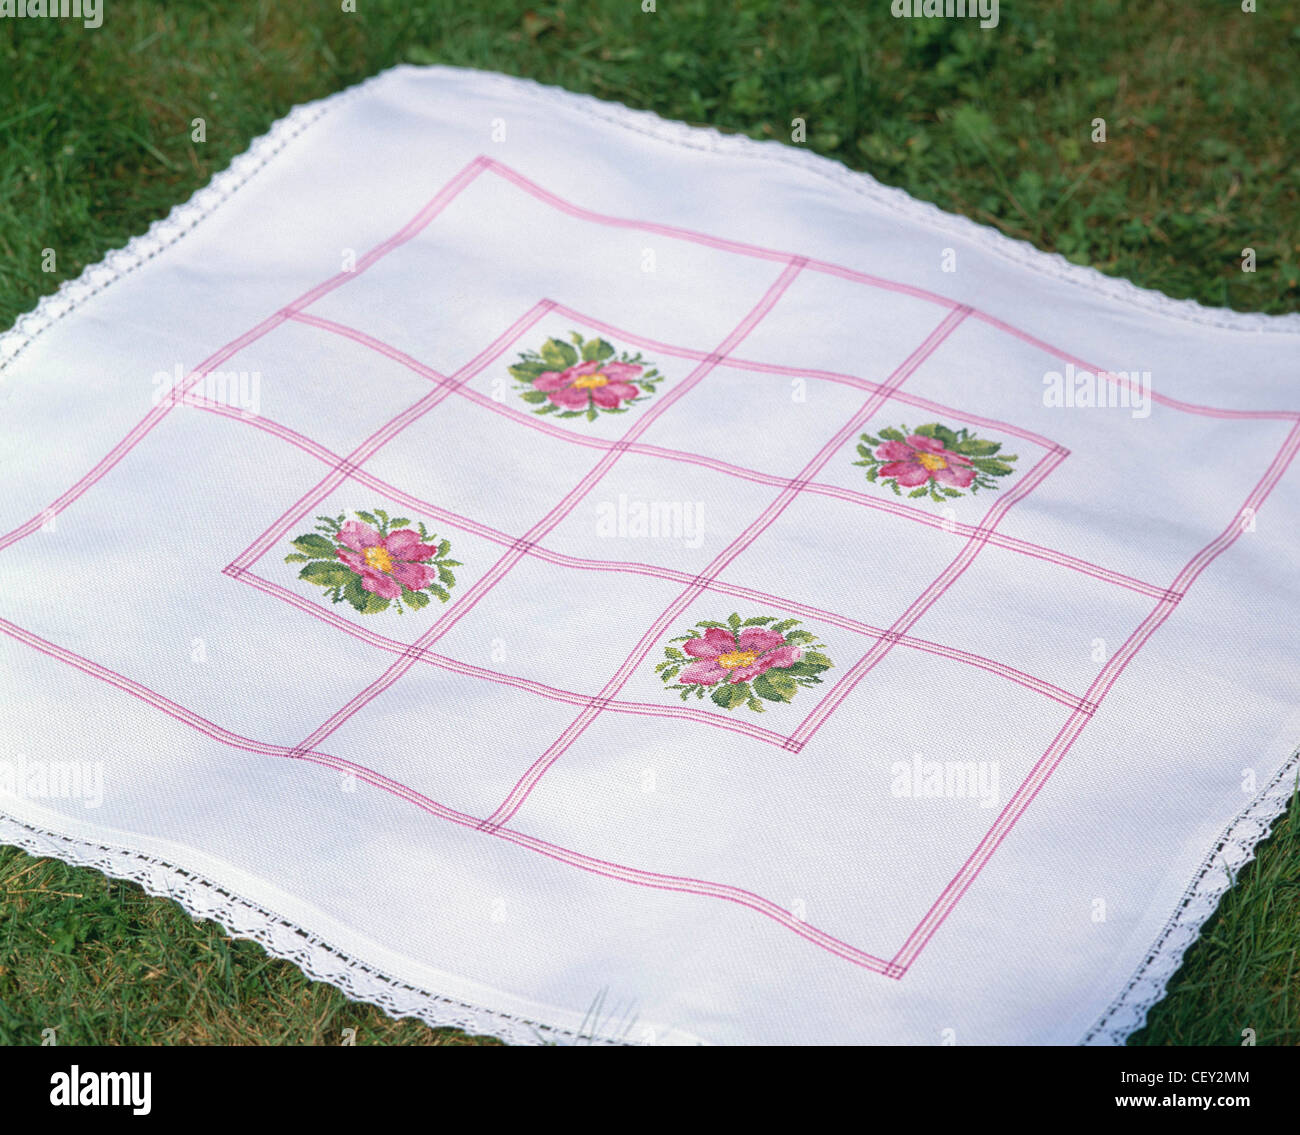 Lace Embroidered Stockfotos & Lace Embroidered Bilder - Seite 2 - Alamy